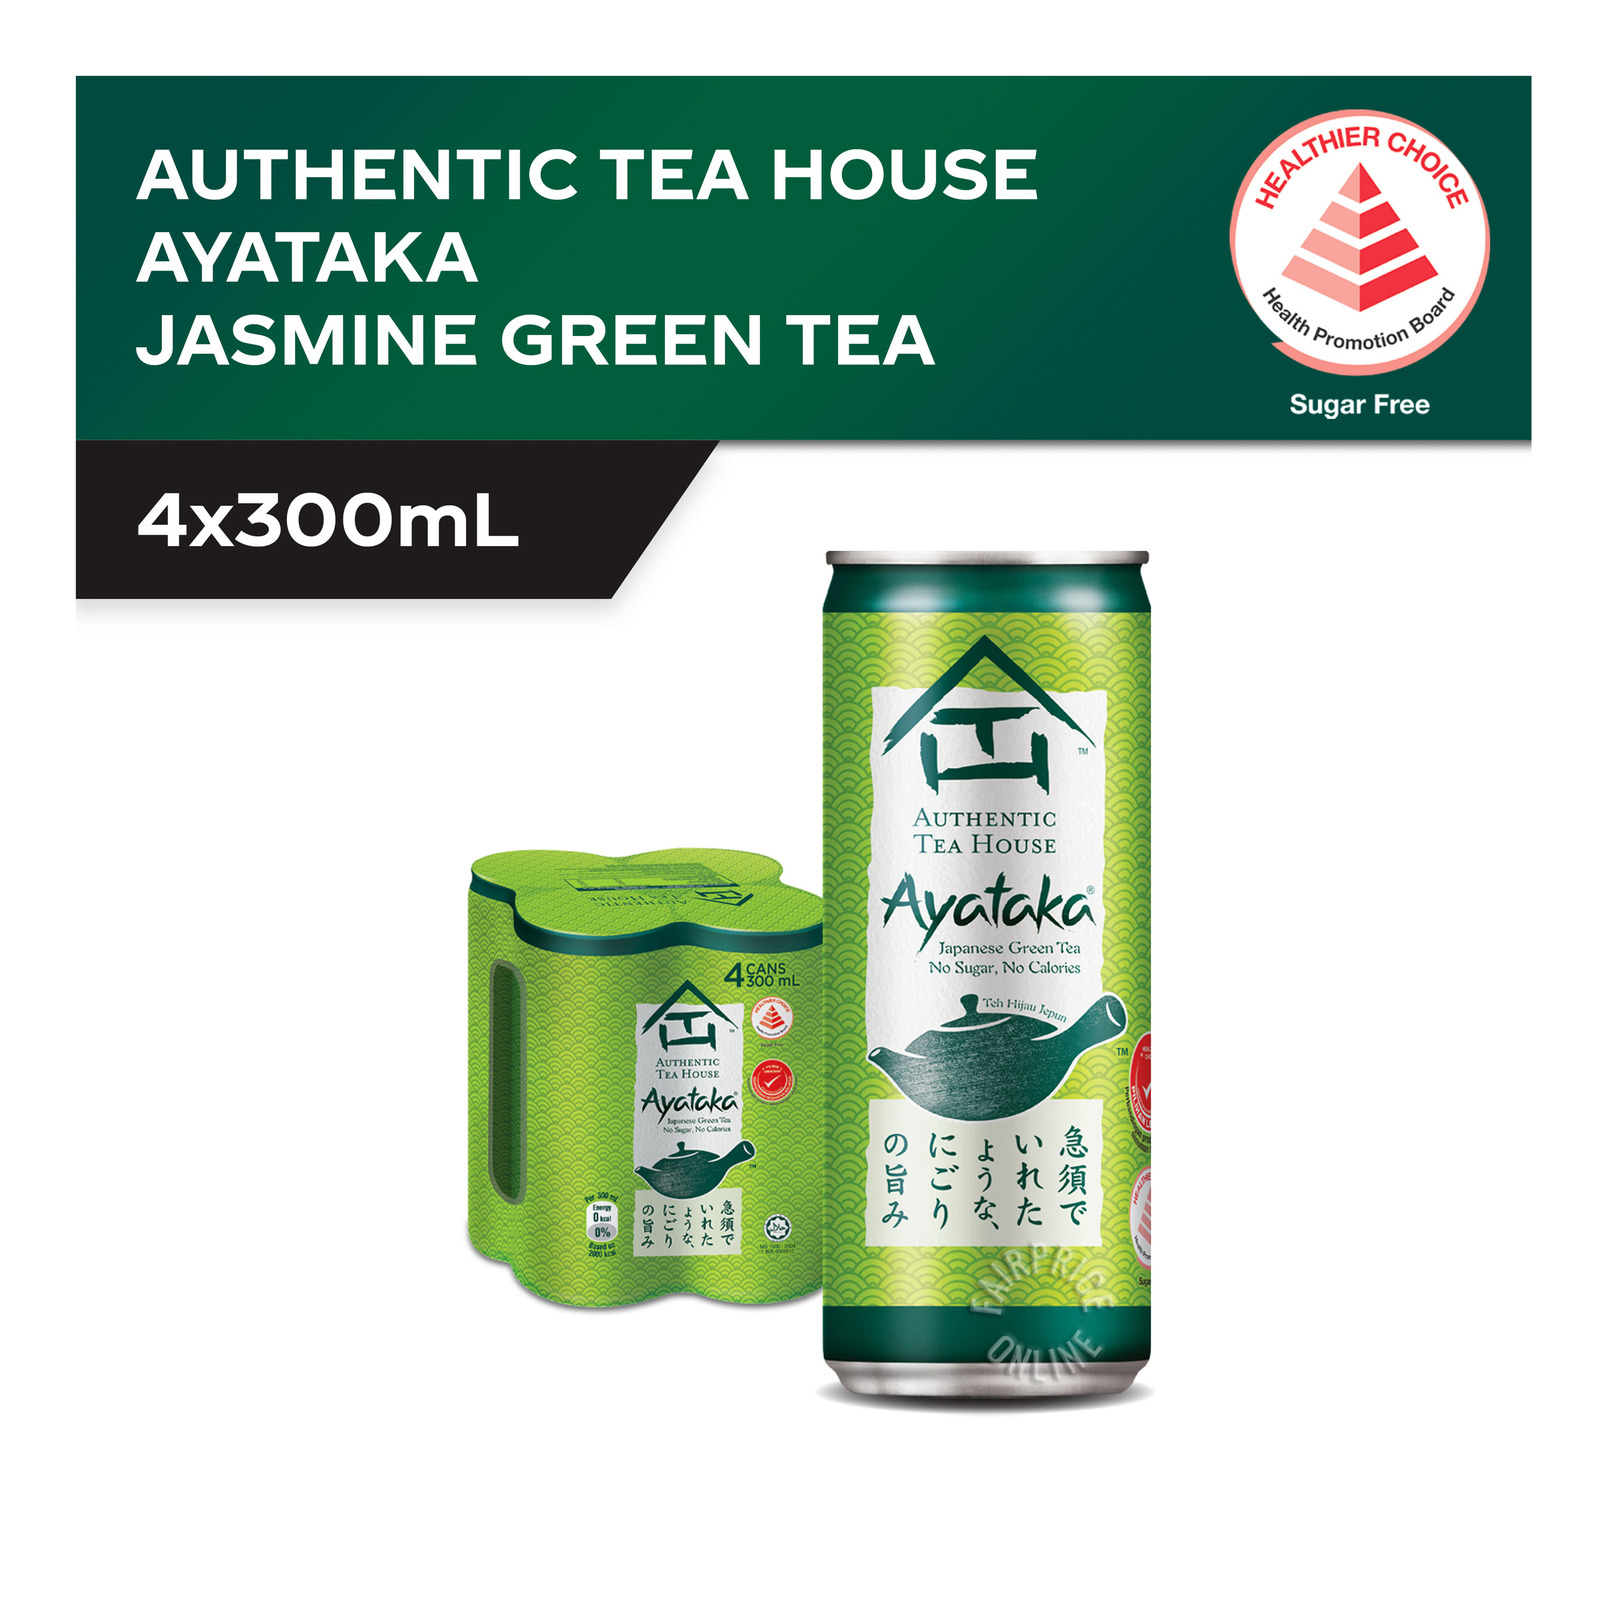 Authentic Tea House Ayataka No Sugar Japanese Green Tea (1.5L)